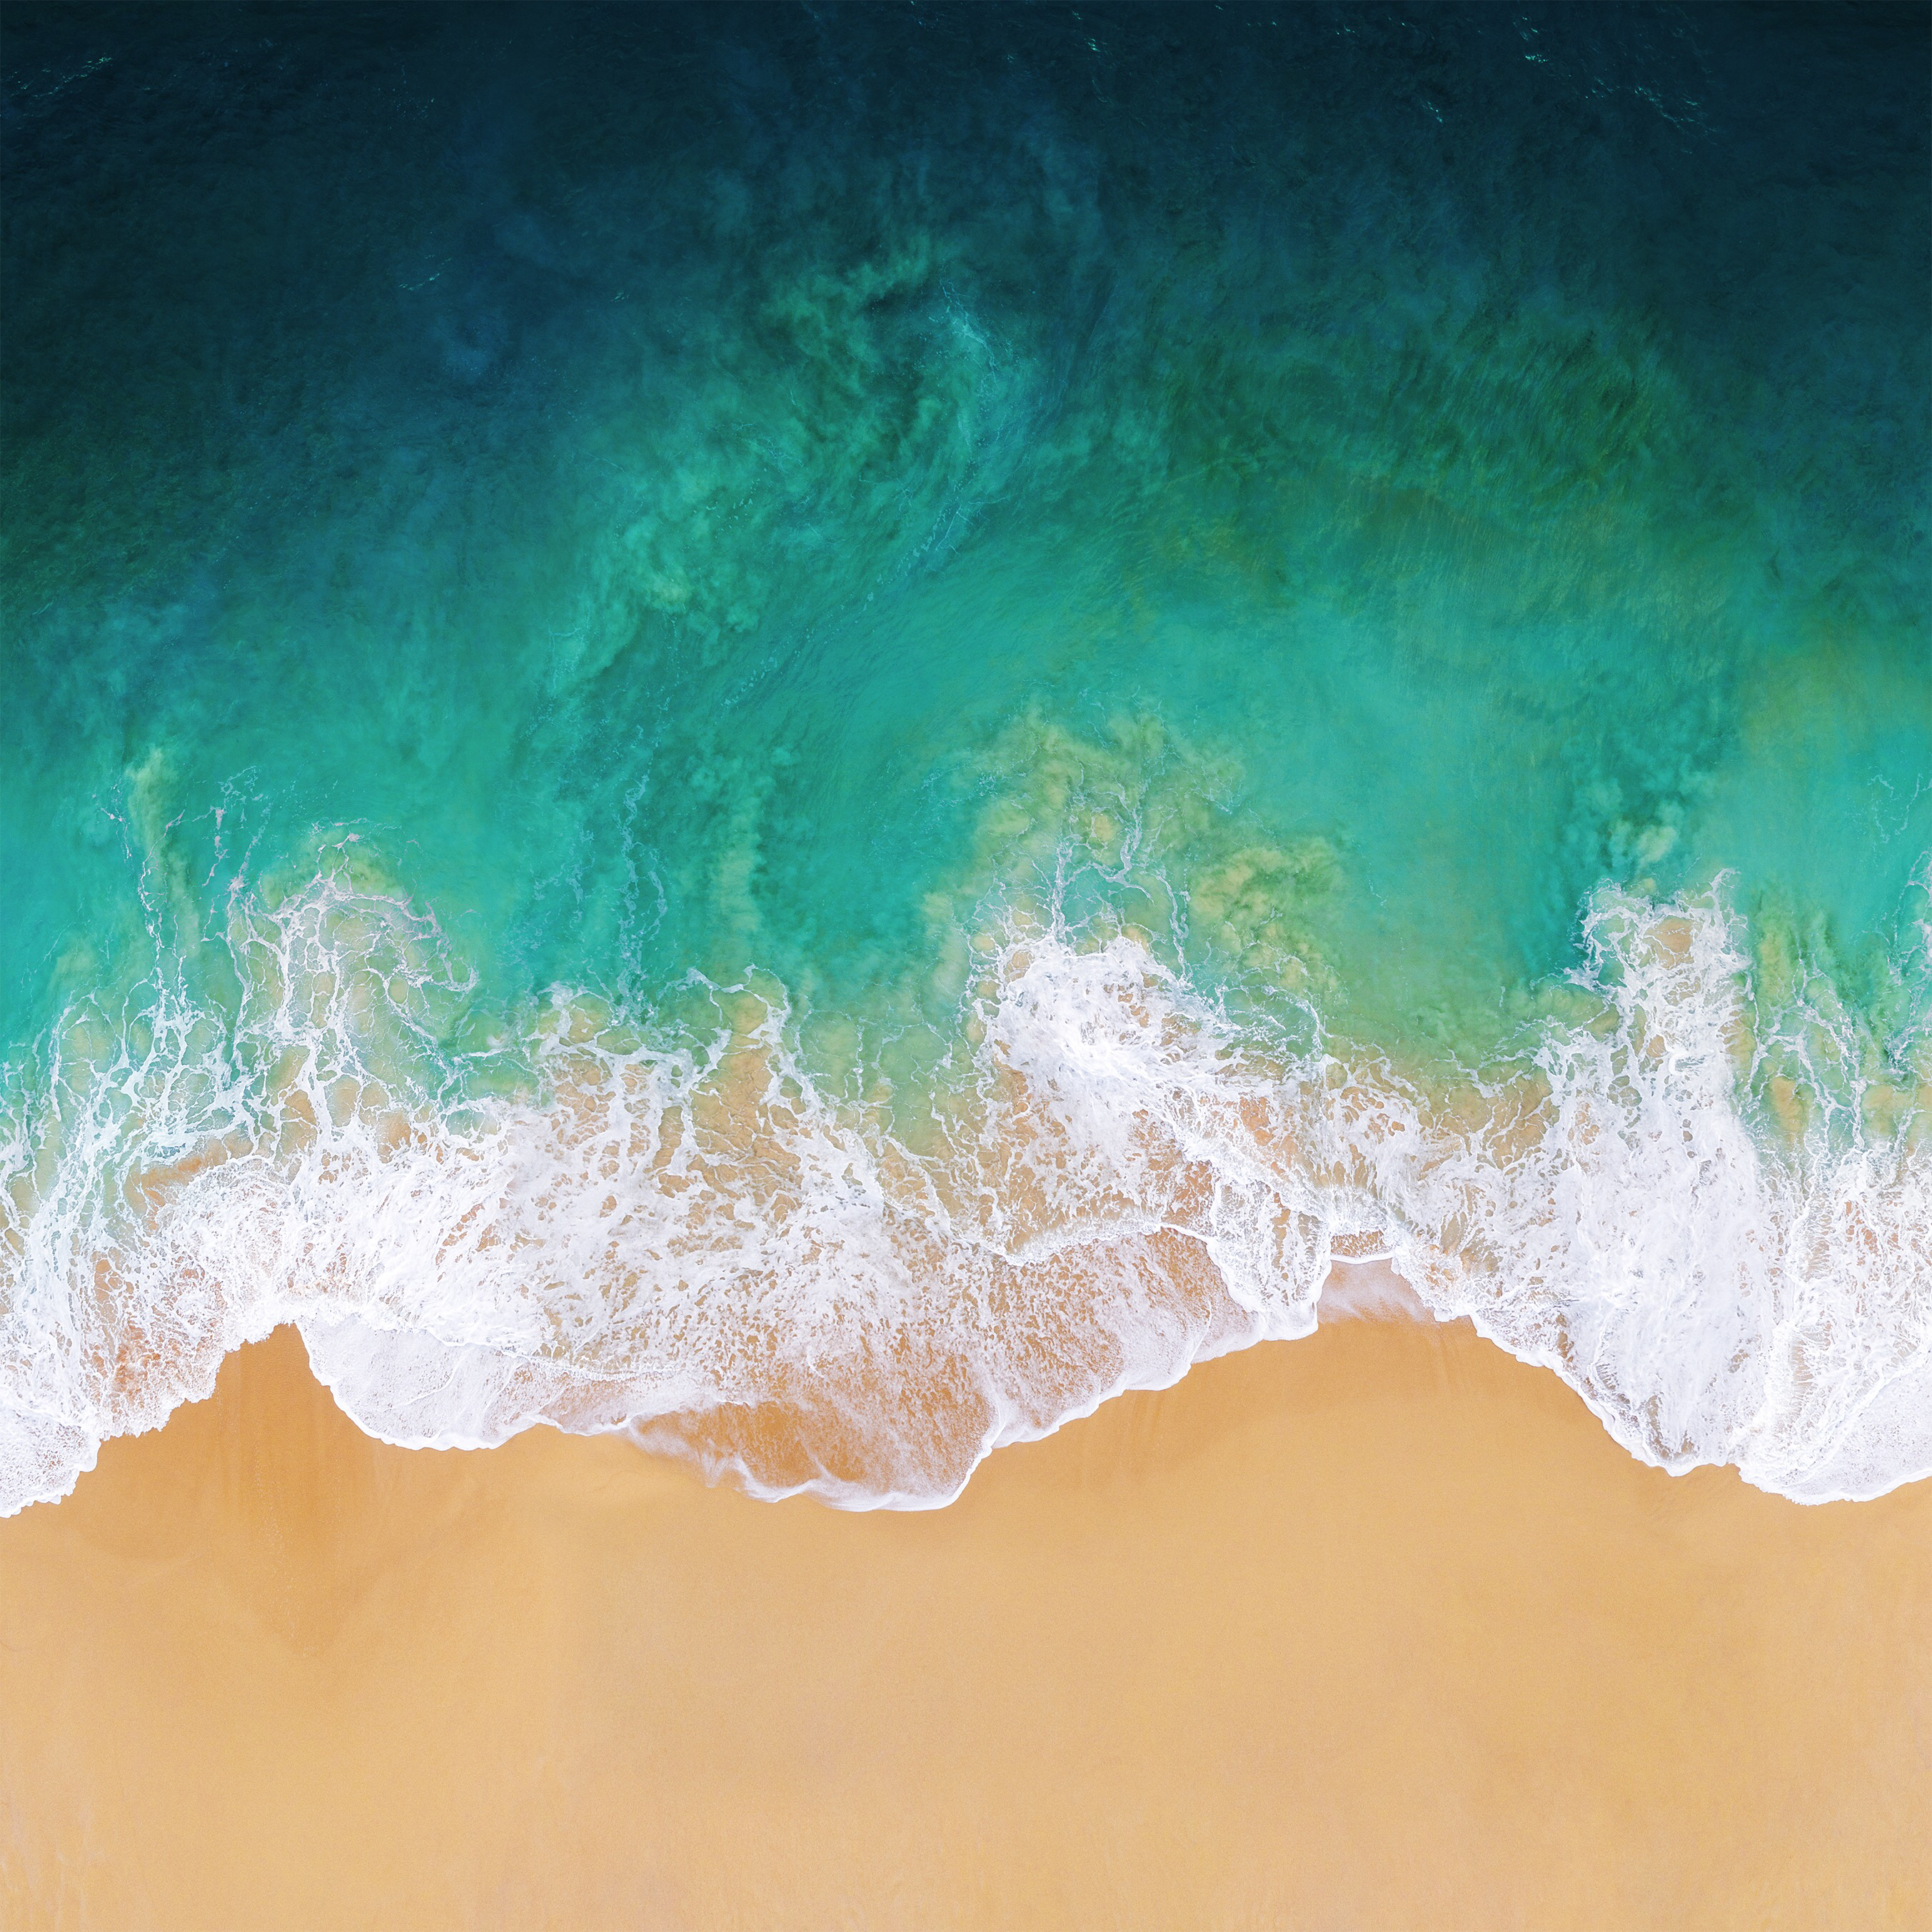 download the real ios 11 wallpaper for iphone - iclarified